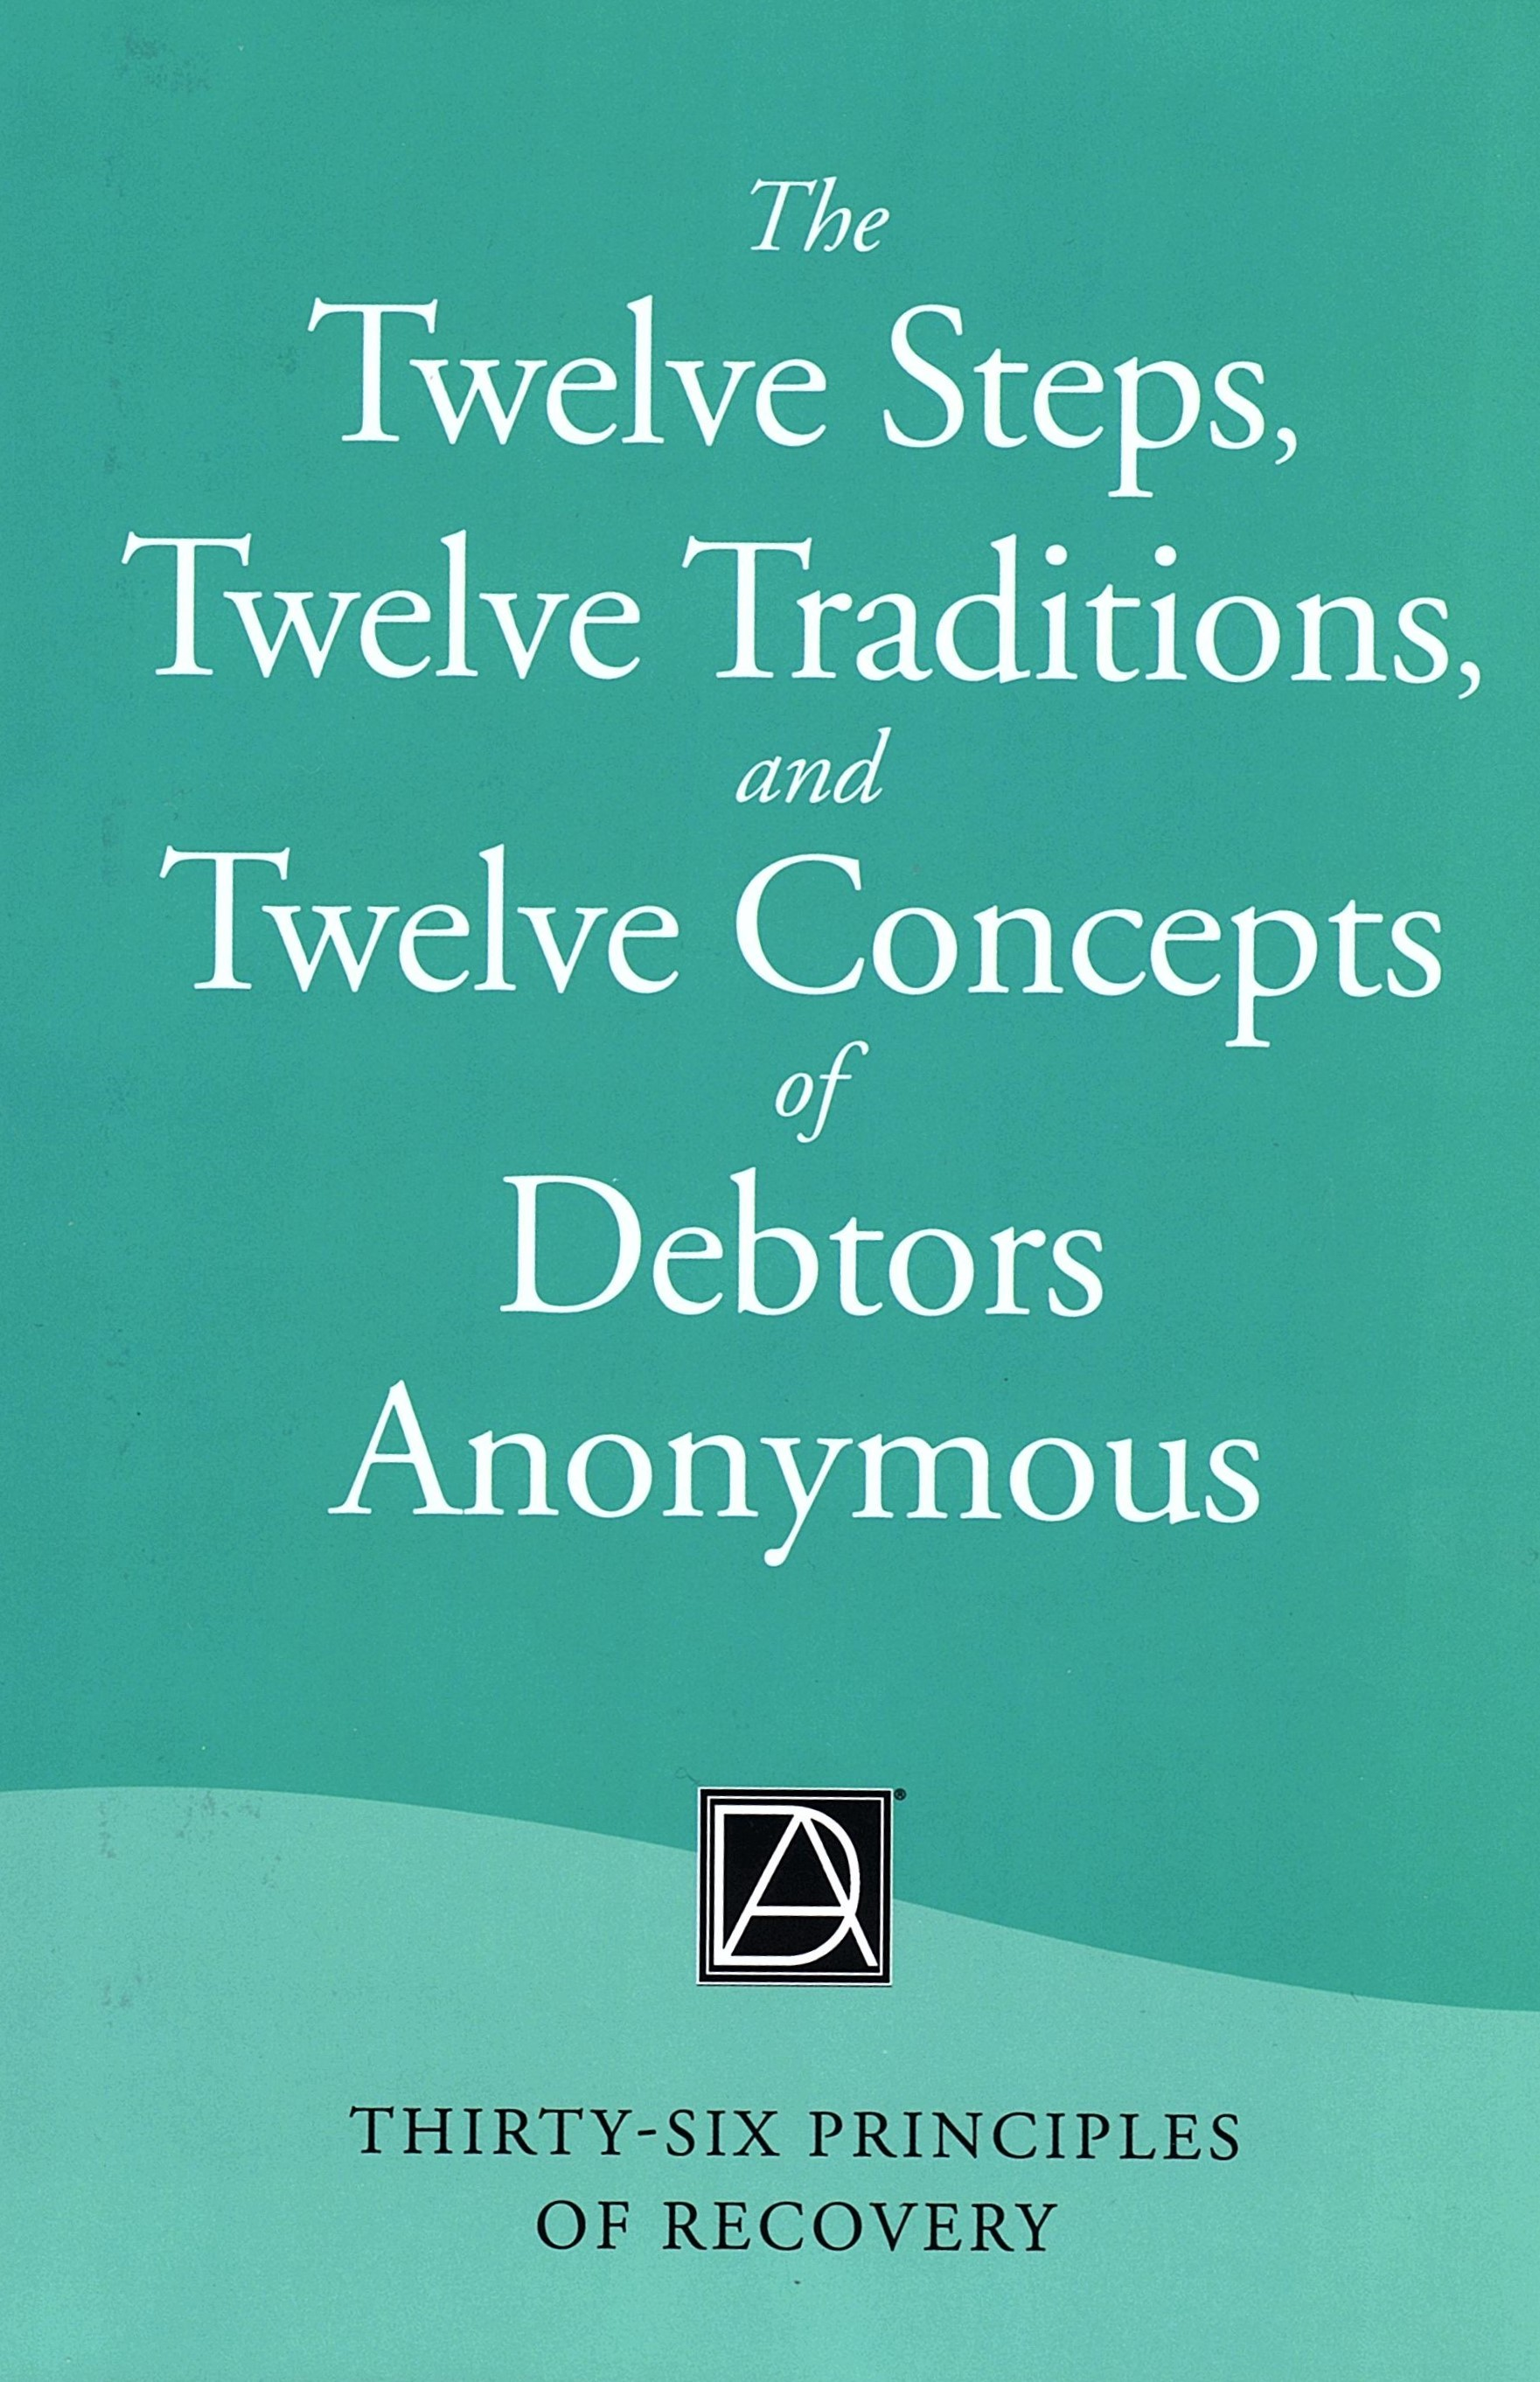 The Twelve Steps Traditions And Concepts Of D A Hardcover